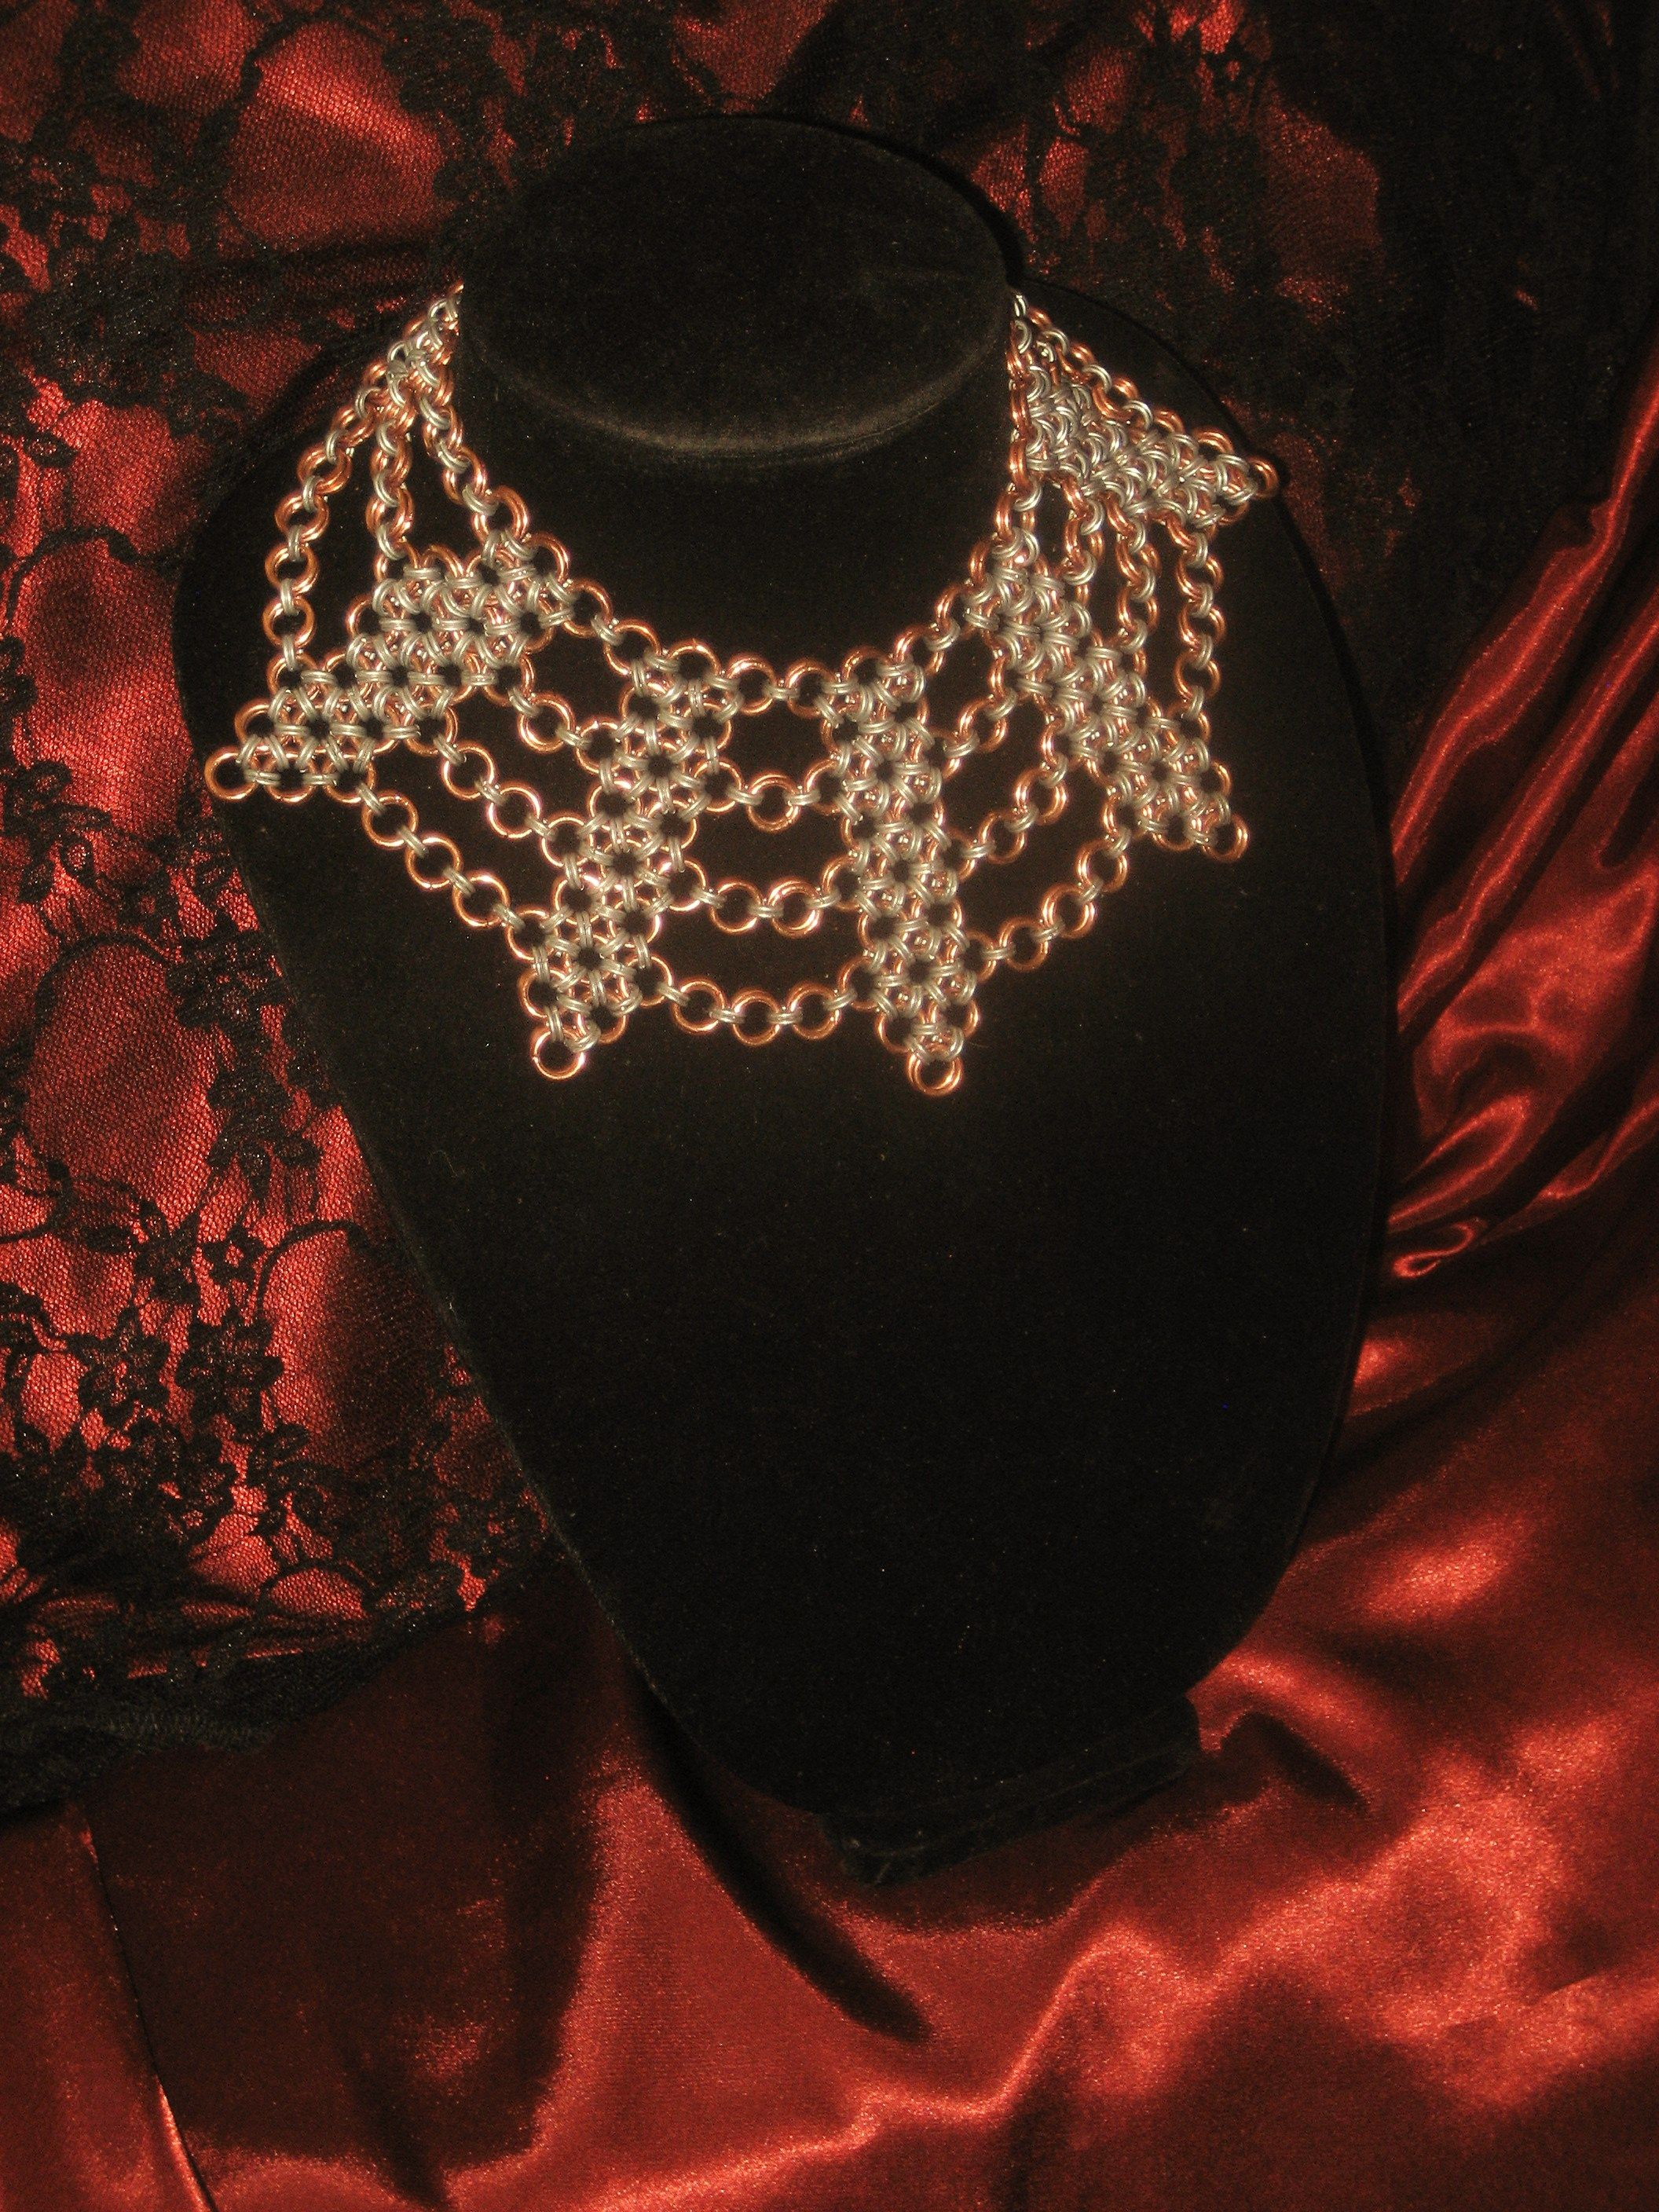 chain maille copper and steel choker/ chain maille necklace www.facebook.com/debosjewlery